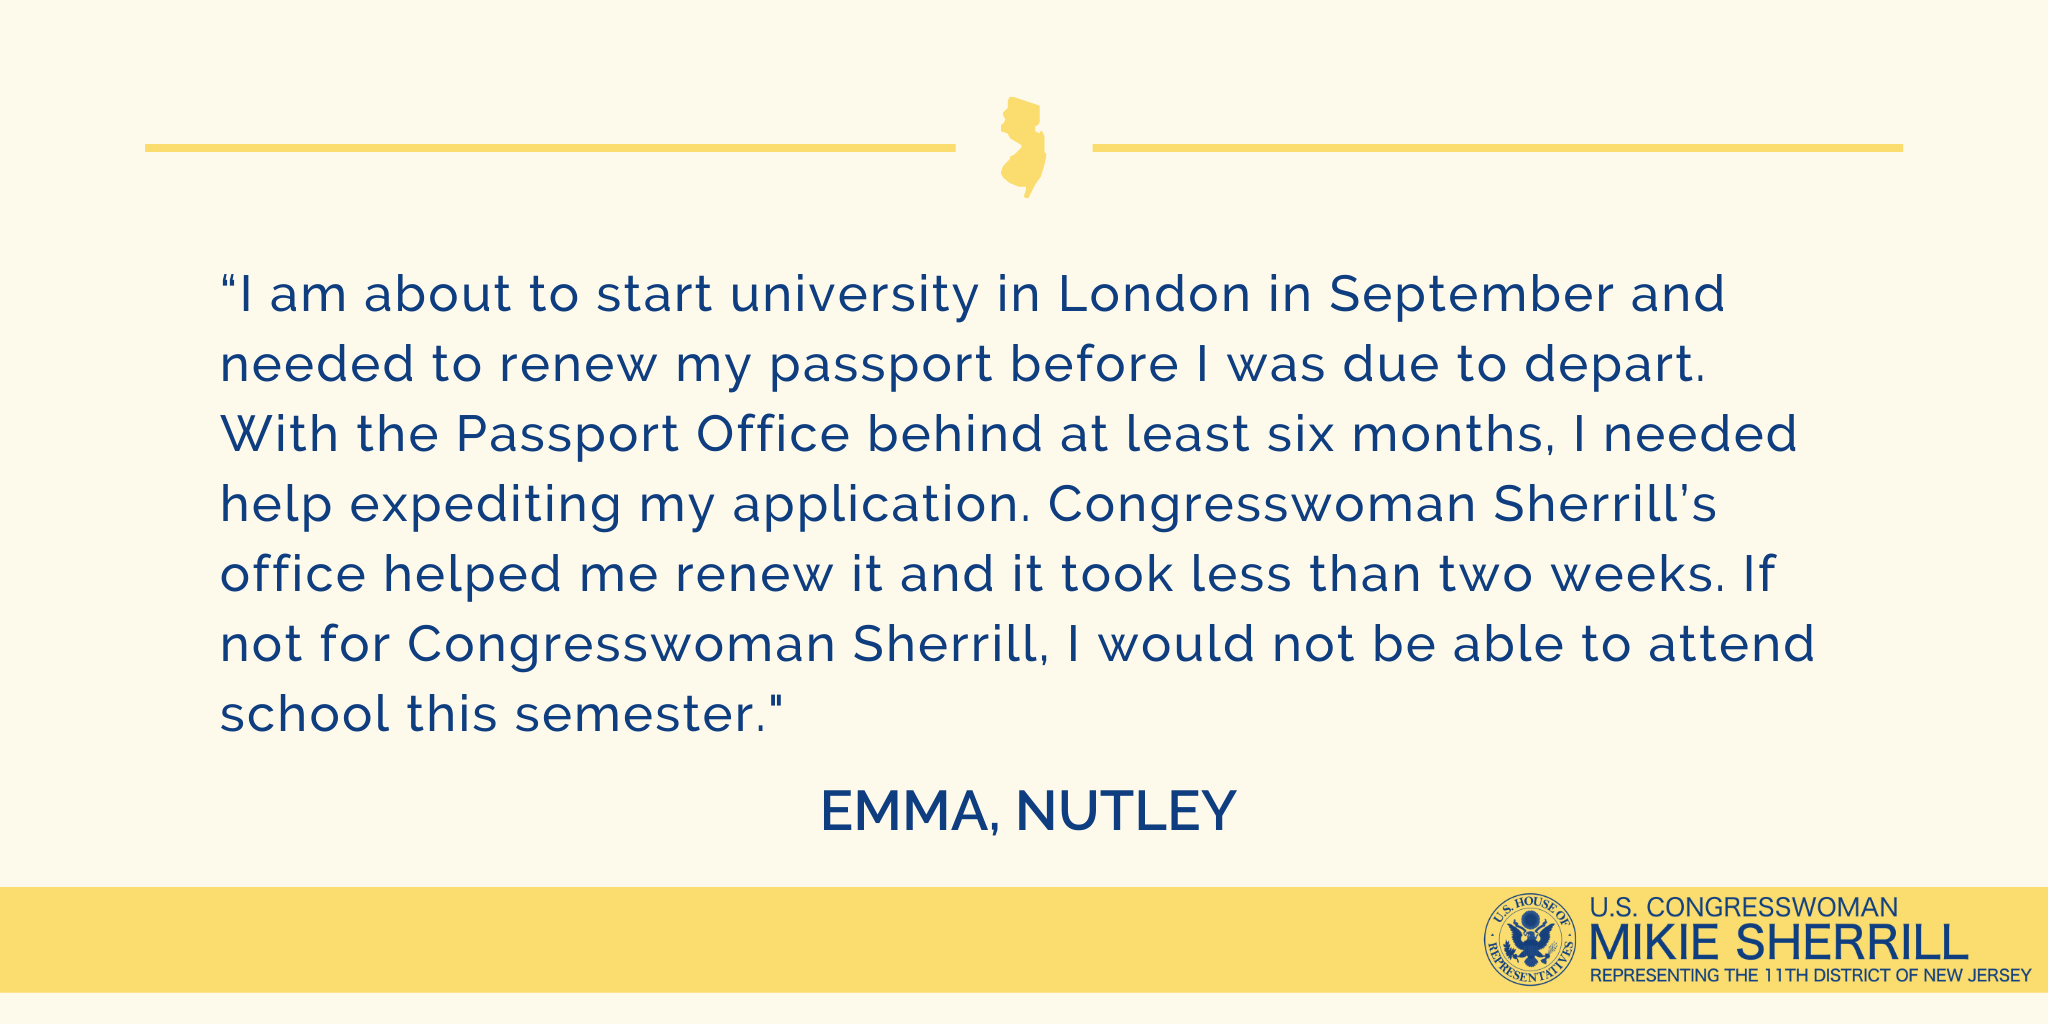 Emma's Story: Help with a Passport